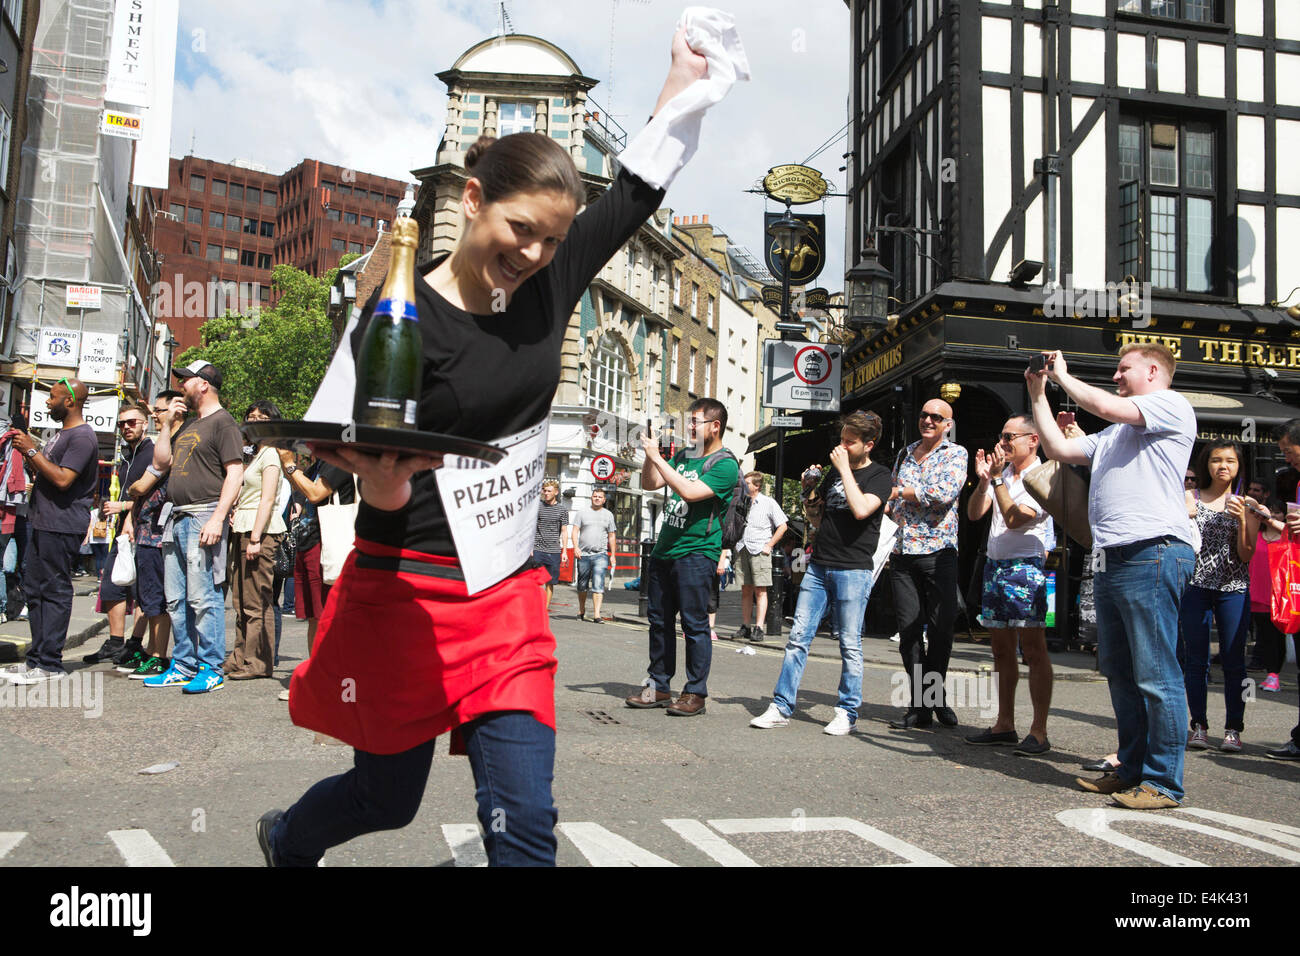 Waiters Race: Soho, London, UK - Stock Image